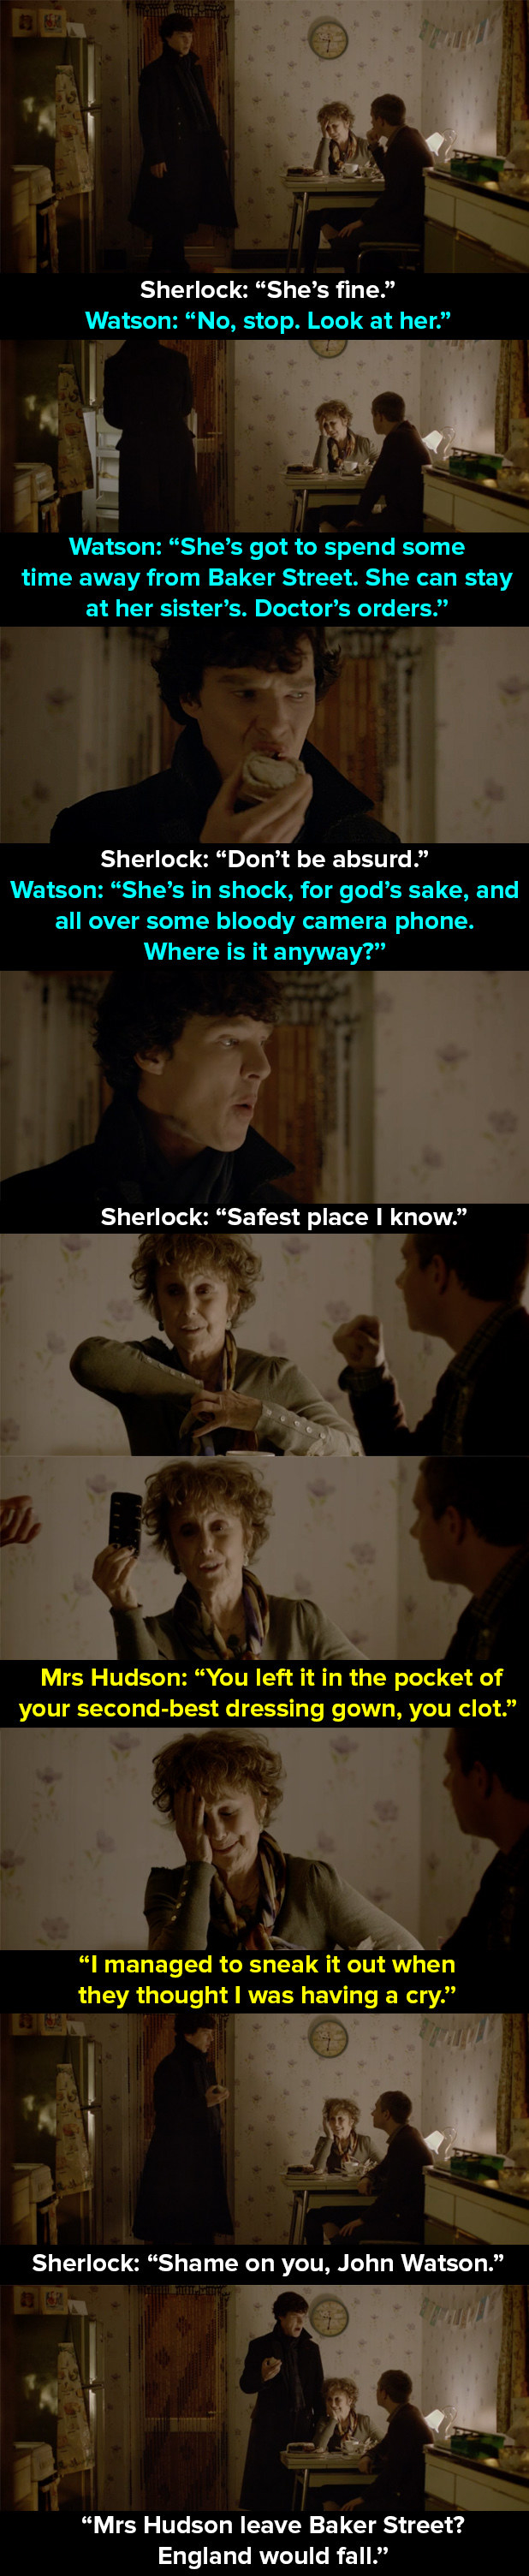 When Mrs Hudson is held hostage in the apartment.